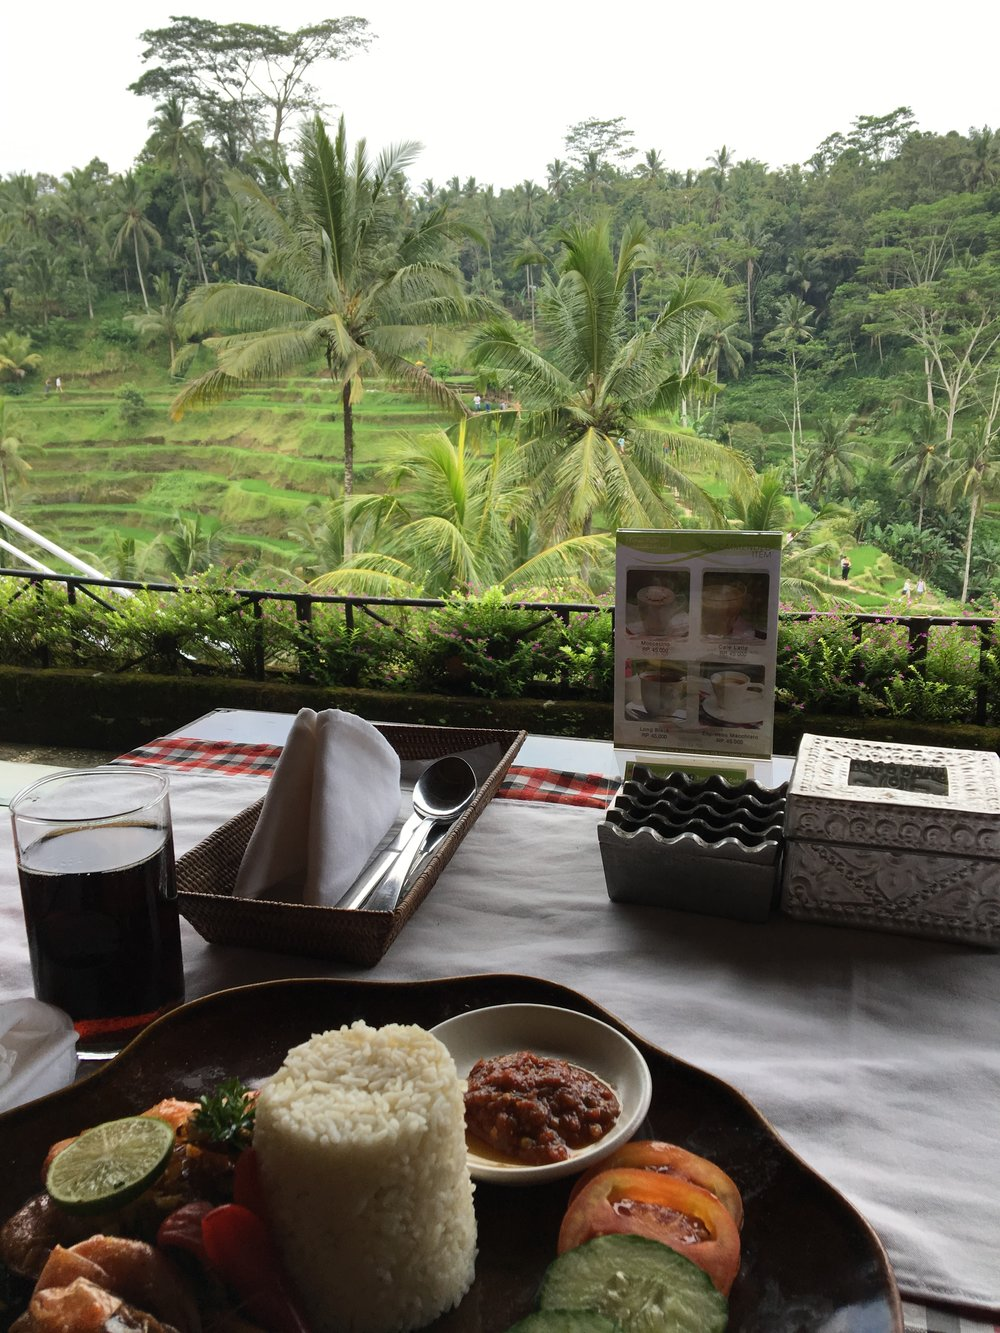 Lunch of prawns, rice, and vegetables on the Tegallalang Rice Terraces